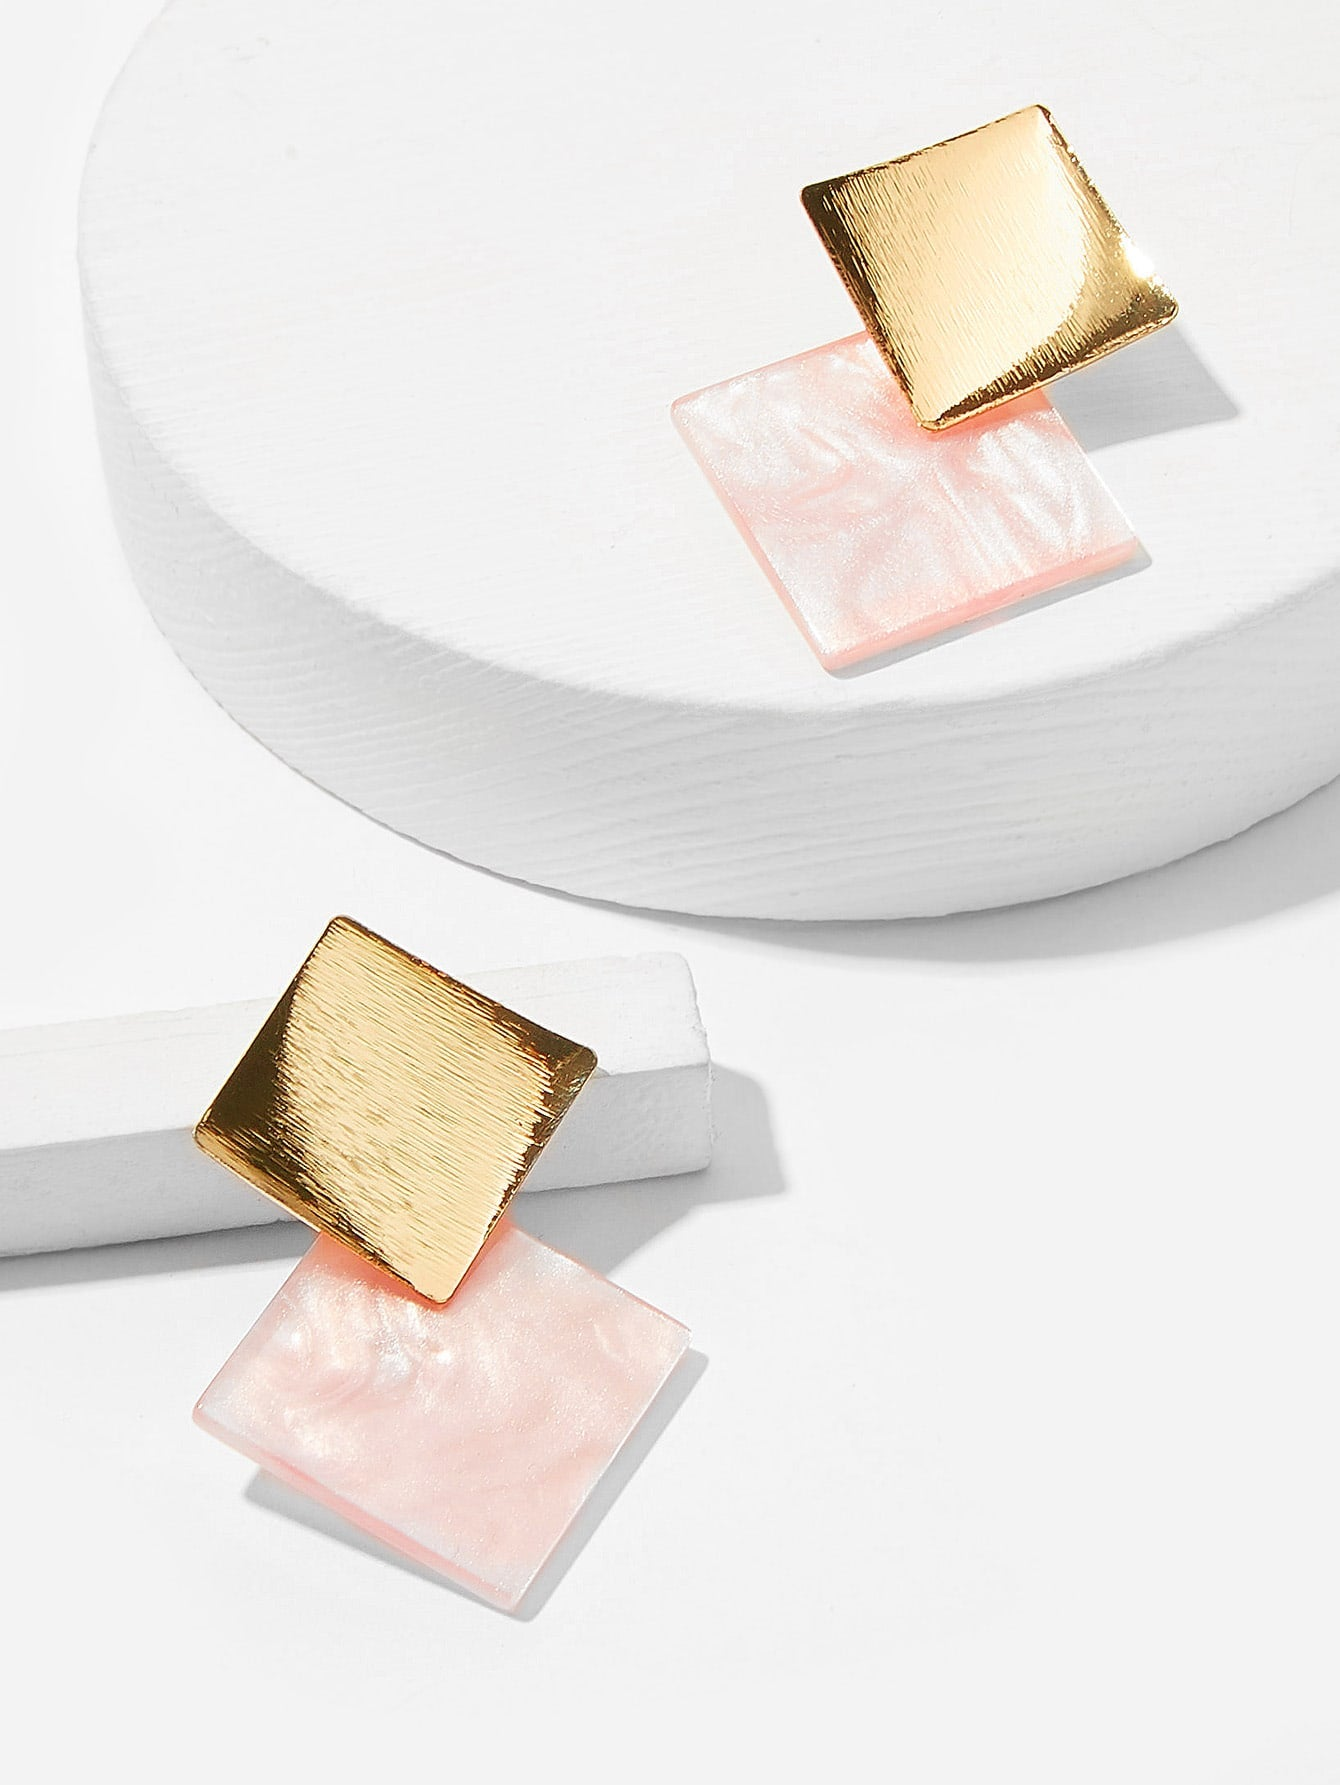 1 Pair White And Pink With Golden Top Square Stud Earrings